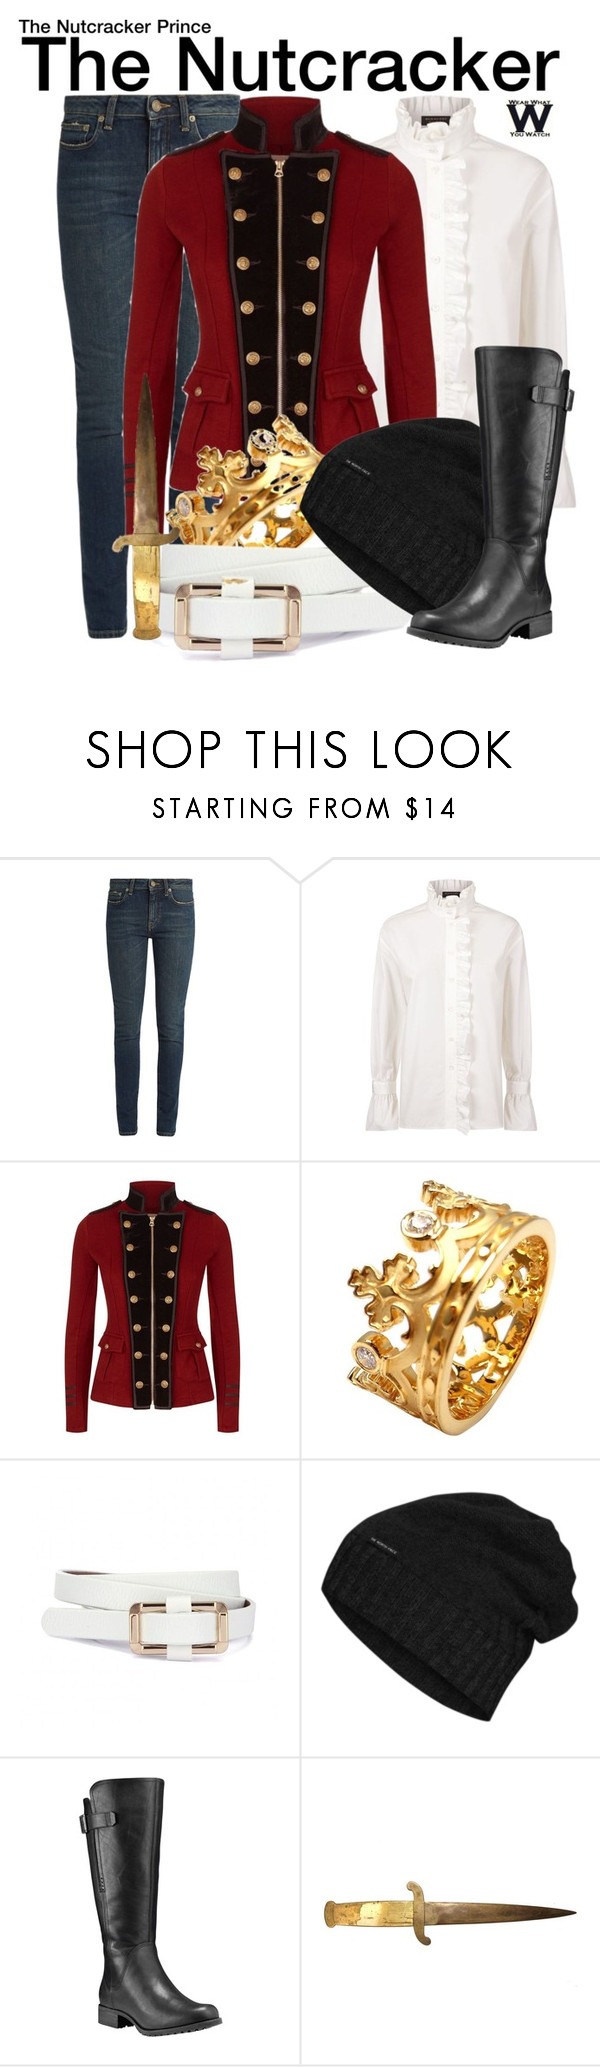 """""""The Nutcracker Prince"""" by wearwhatyouwatch ❤ liked on Polyvore featuring Yves Saint Laurent, Burberry, Denim & Supply by Ralph Lauren, Carrera y Carrera, The North Face, Timberland, wearwhatyouwatch and film"""